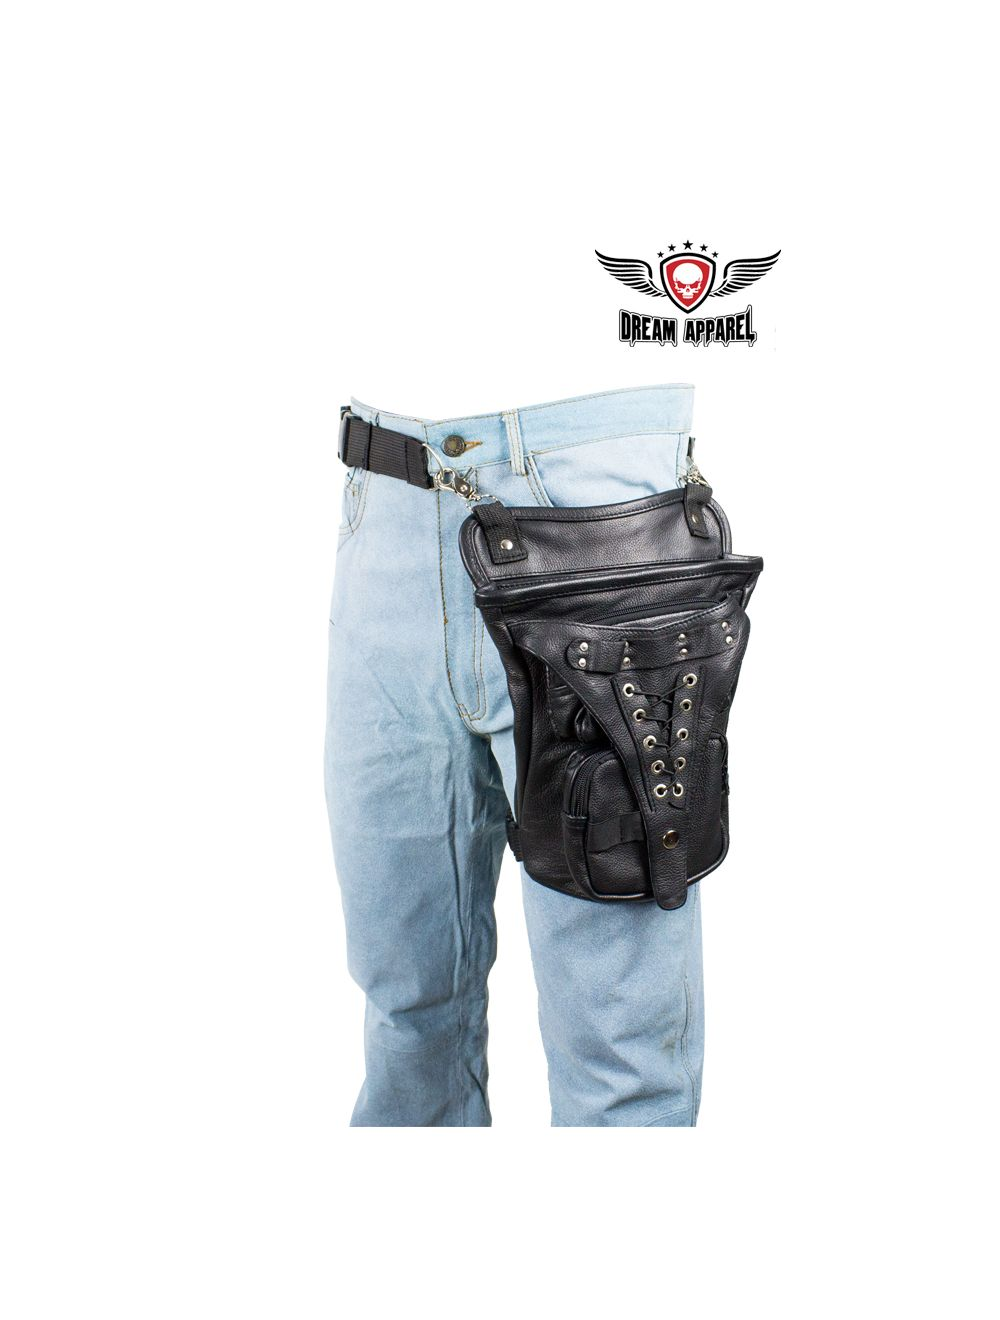 Braided Naked Cowhide Leather Chaps W/ Mesh & Zipout